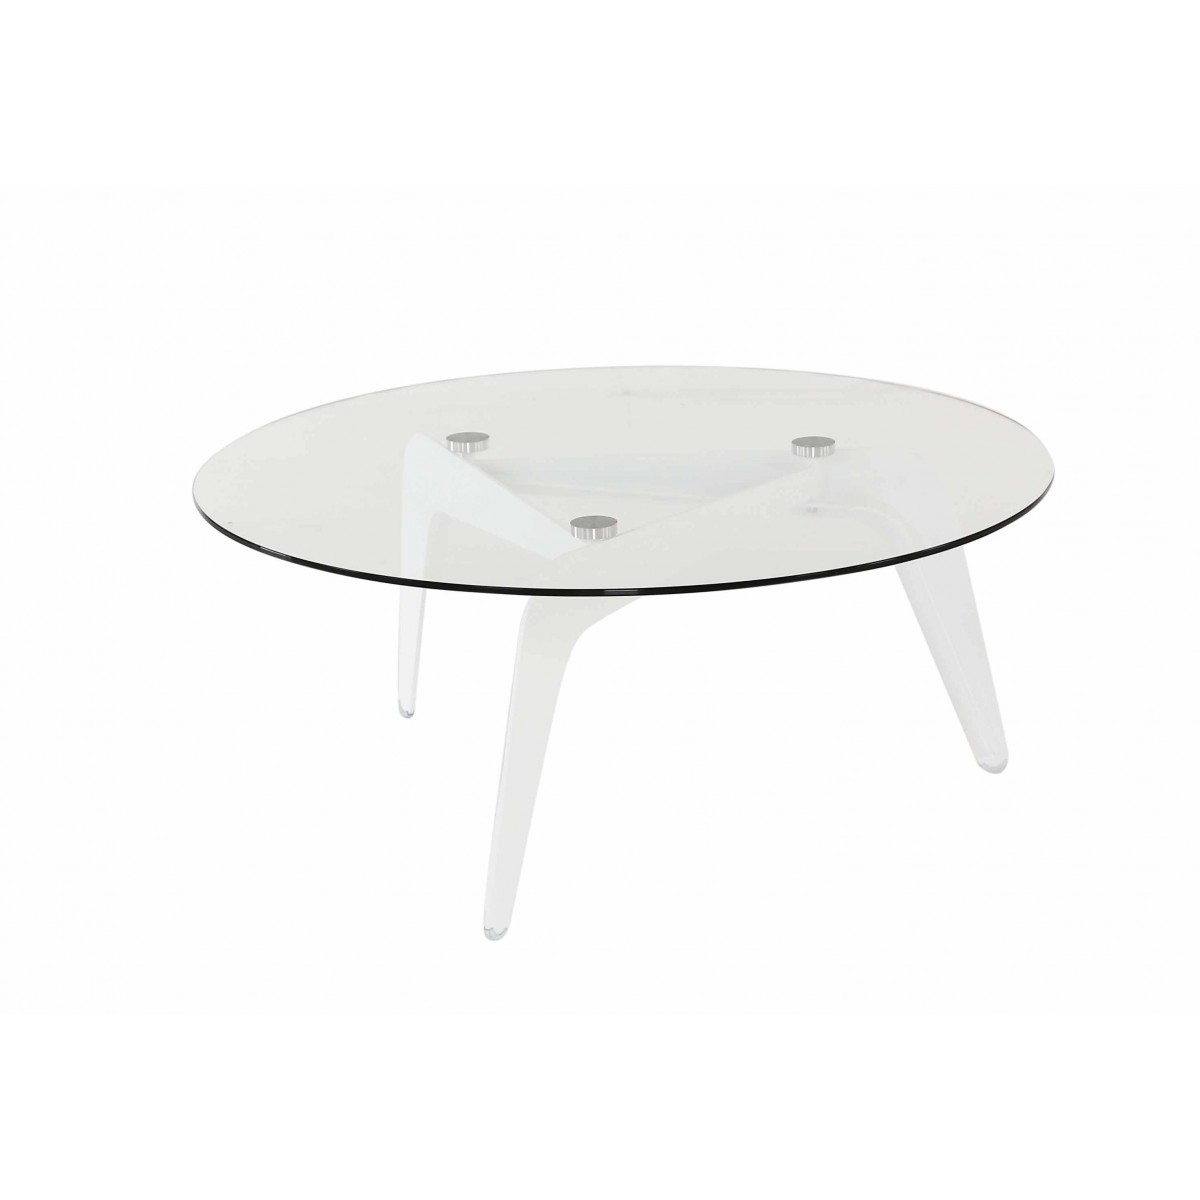 Table basse ronde en verre design mooviin - Table basse en verre ronde ...